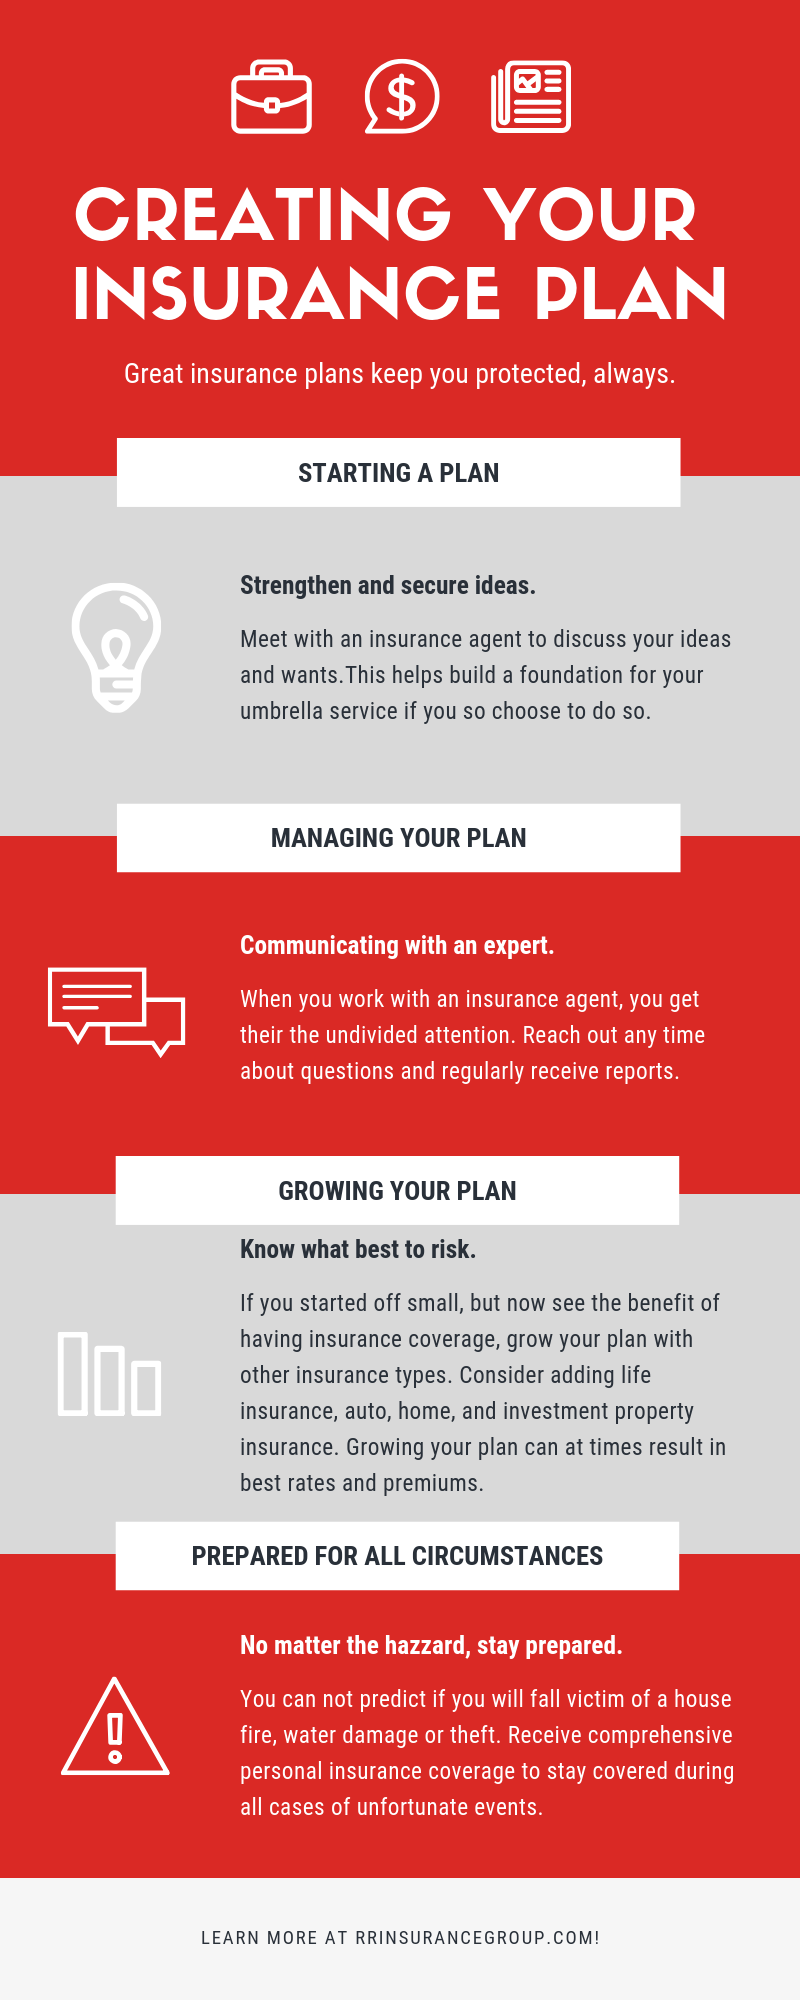 Creating Your Insurance Plan #infographic